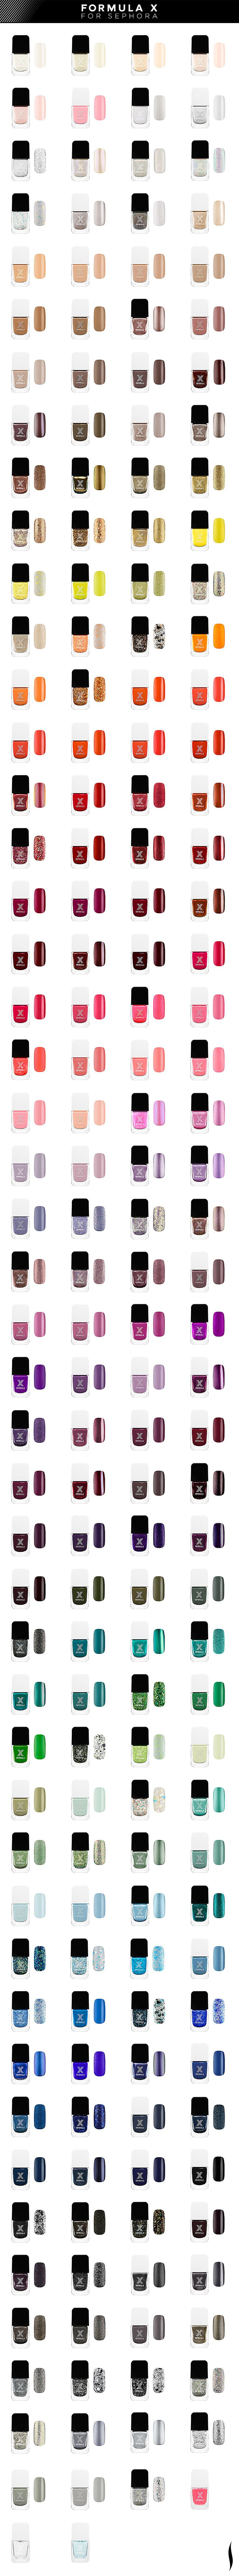 ~Introducing the next in nail: Formula X for Sephora. More than 190 shades of unstoppable effects for the ultimate nail domination   House of Beccaria